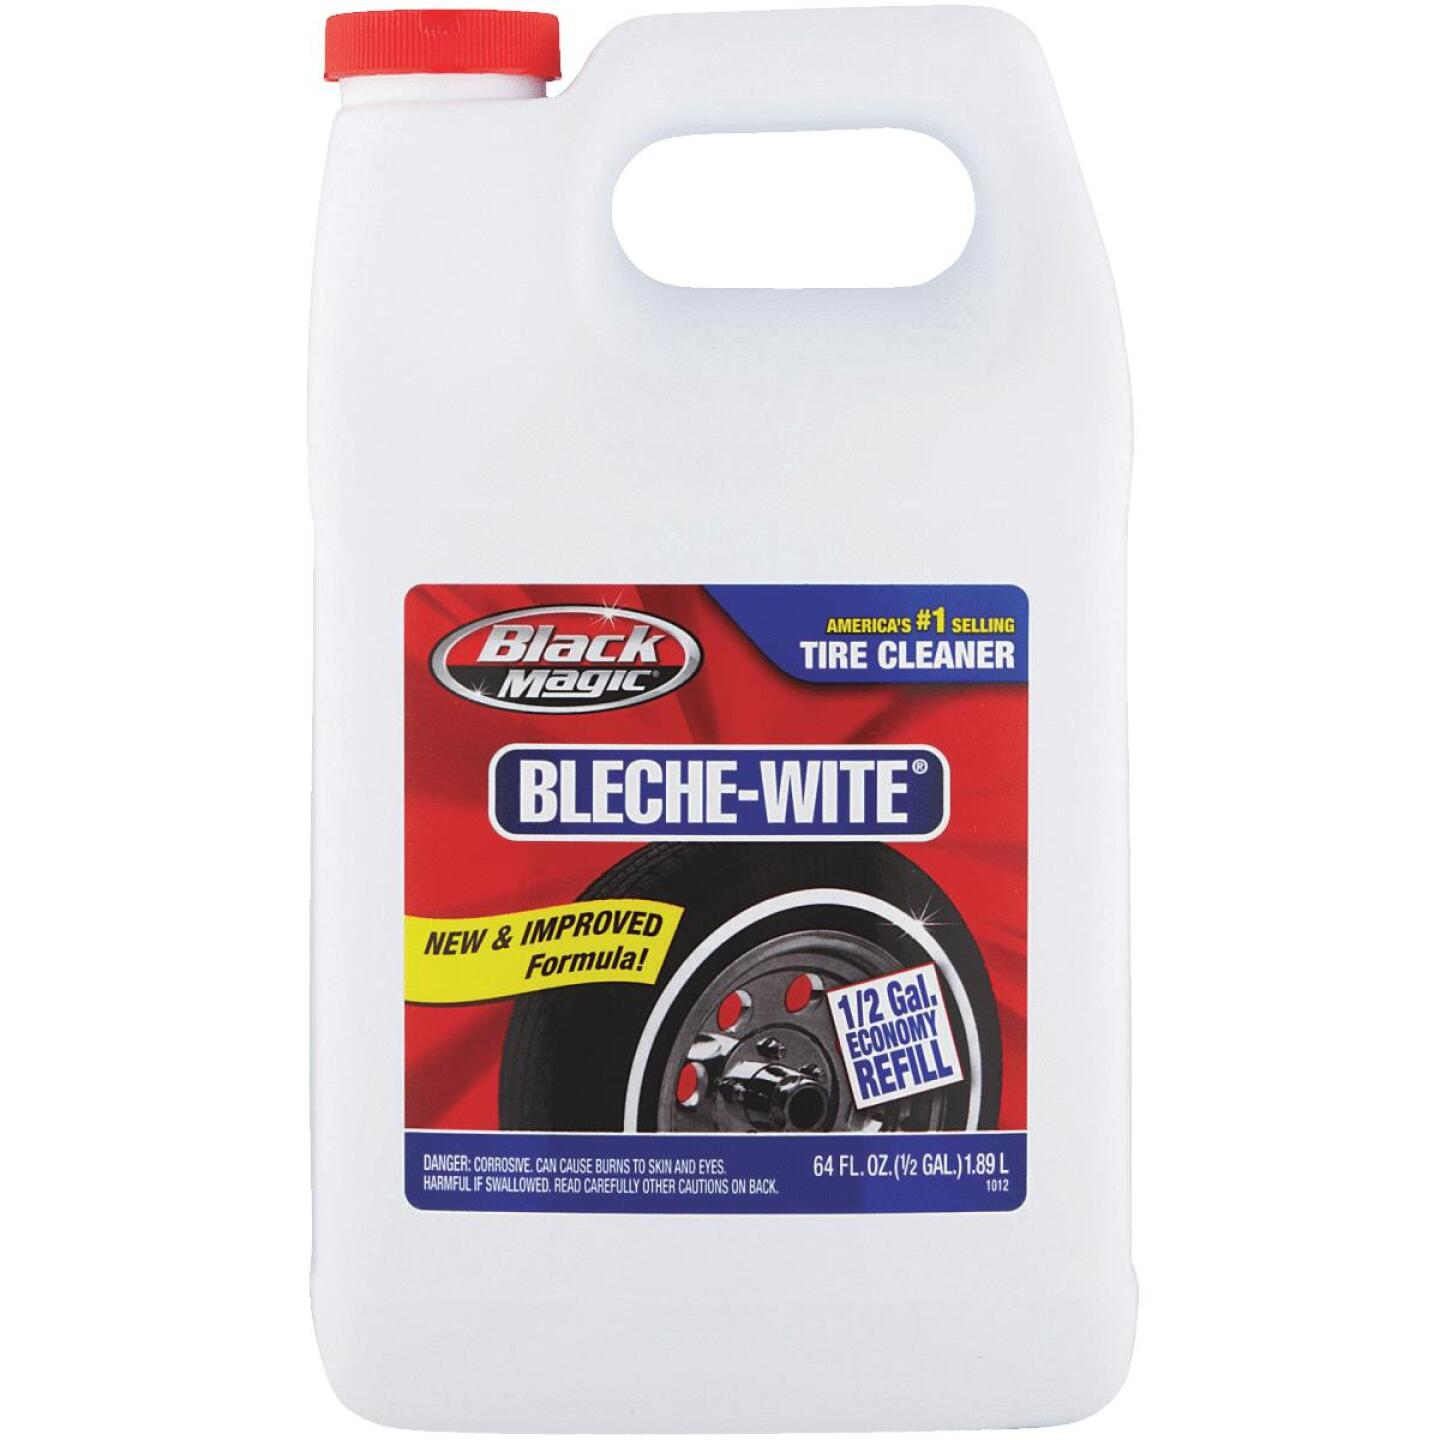 Black Magic Bleche-wite 64 Oz. Pourable Tire Cleaner Image 1